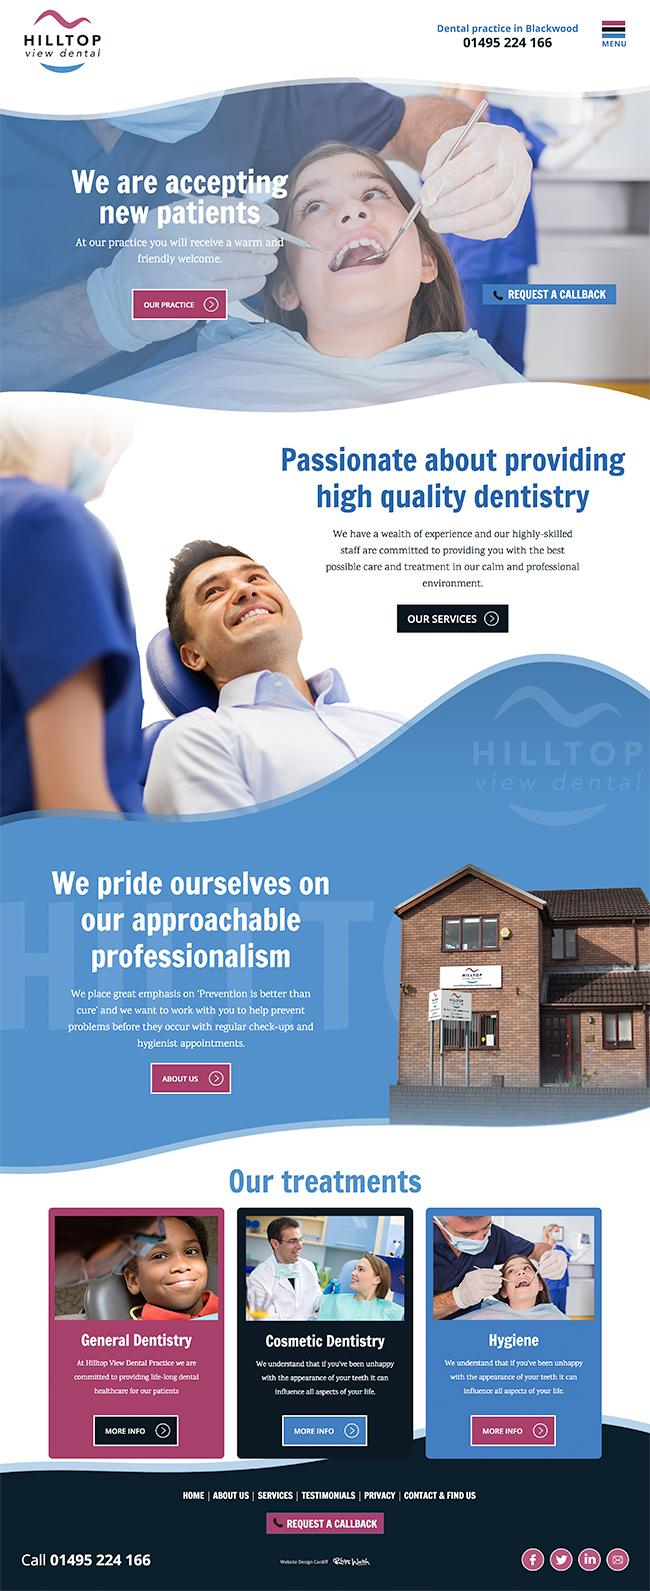 dental practice south wales designers